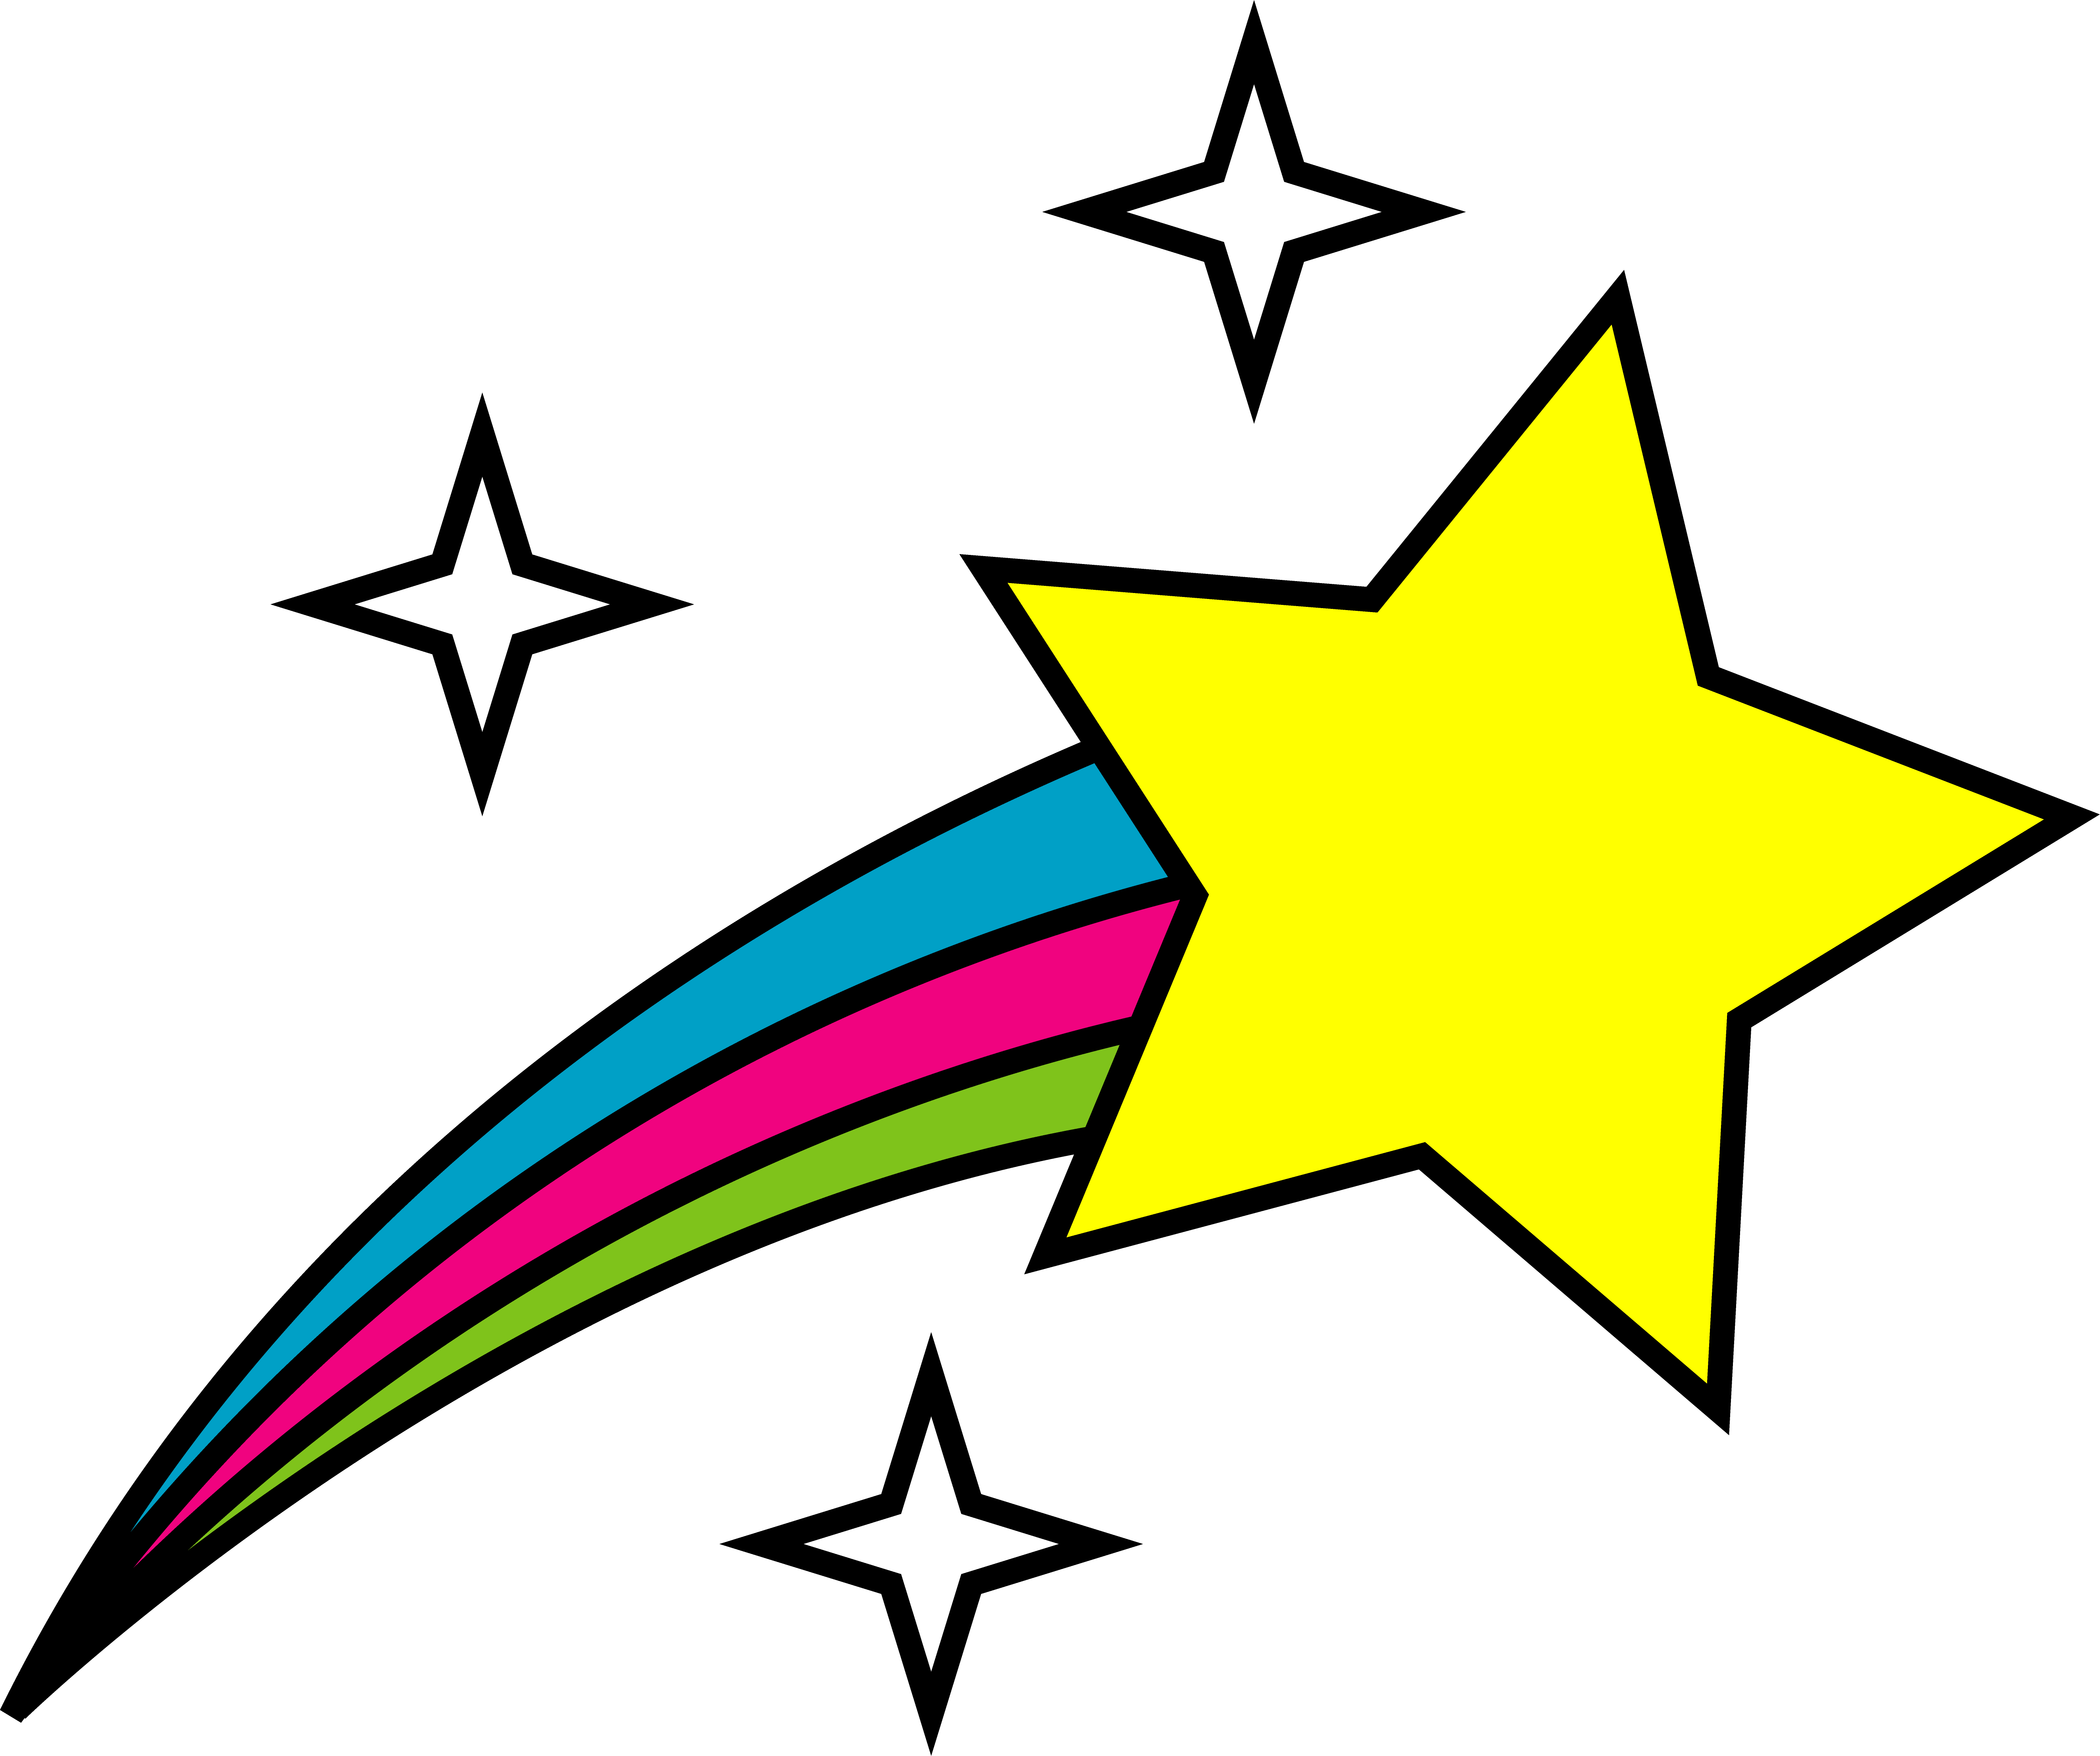 Shooting Star Clip Art I Description from friskychile.